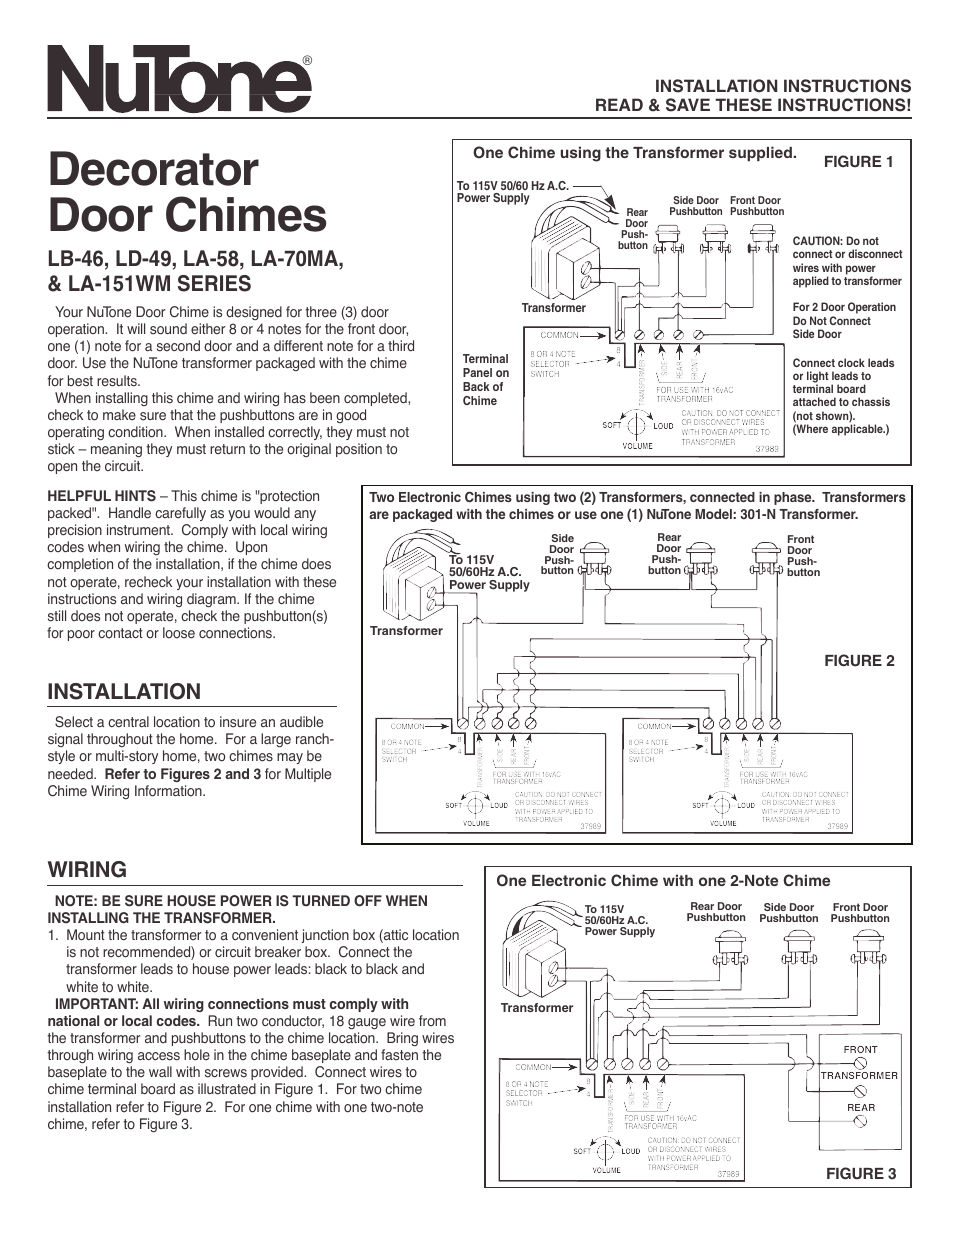 Amazing Door Chime Wiring Diagram Gallery - Electrical And Wiring  Rh:thetada.com | 861